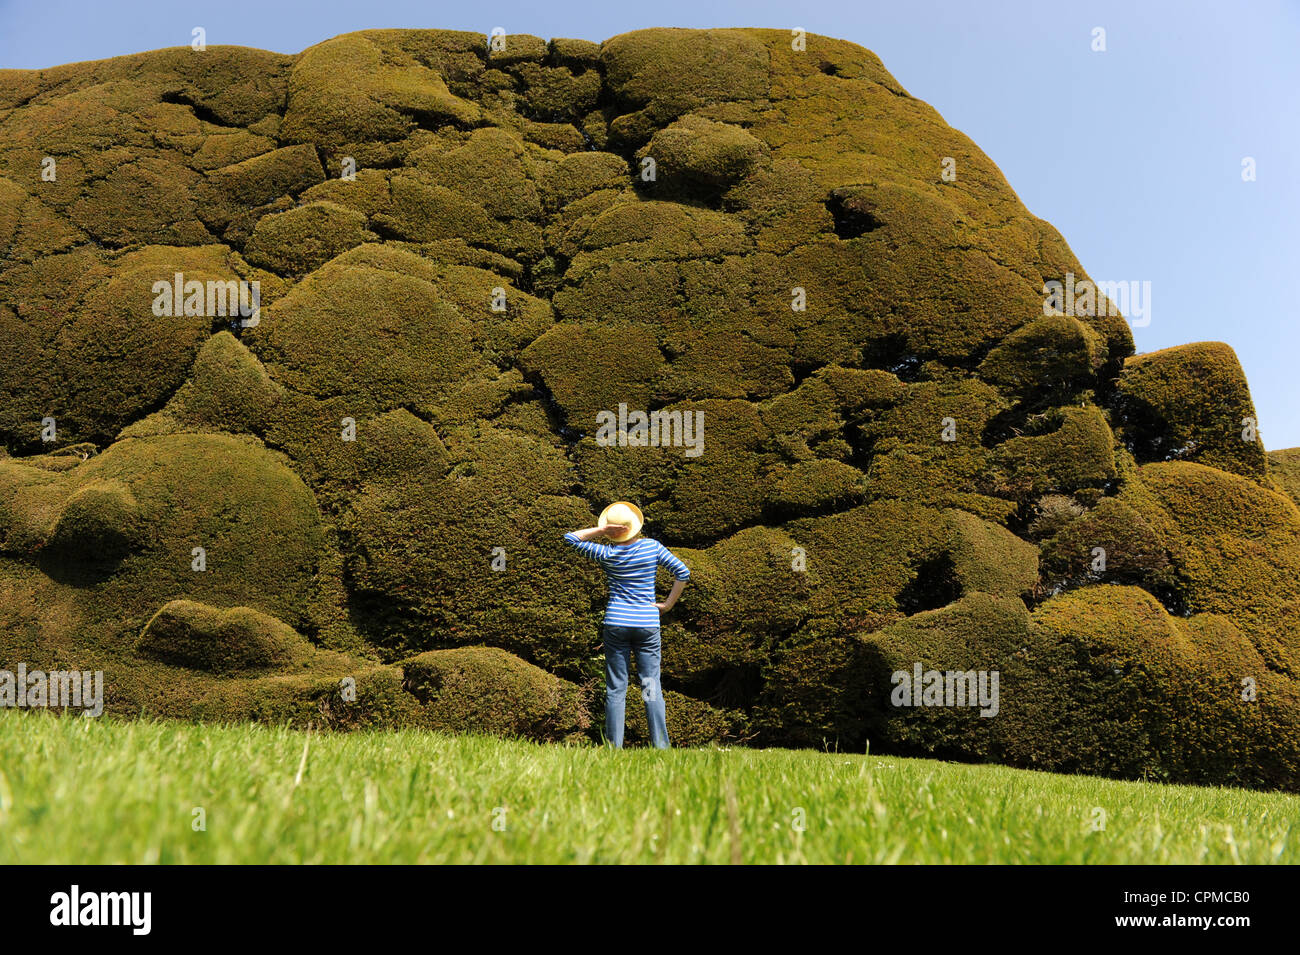 Woman looking at English Yew Hedge - Stock Image